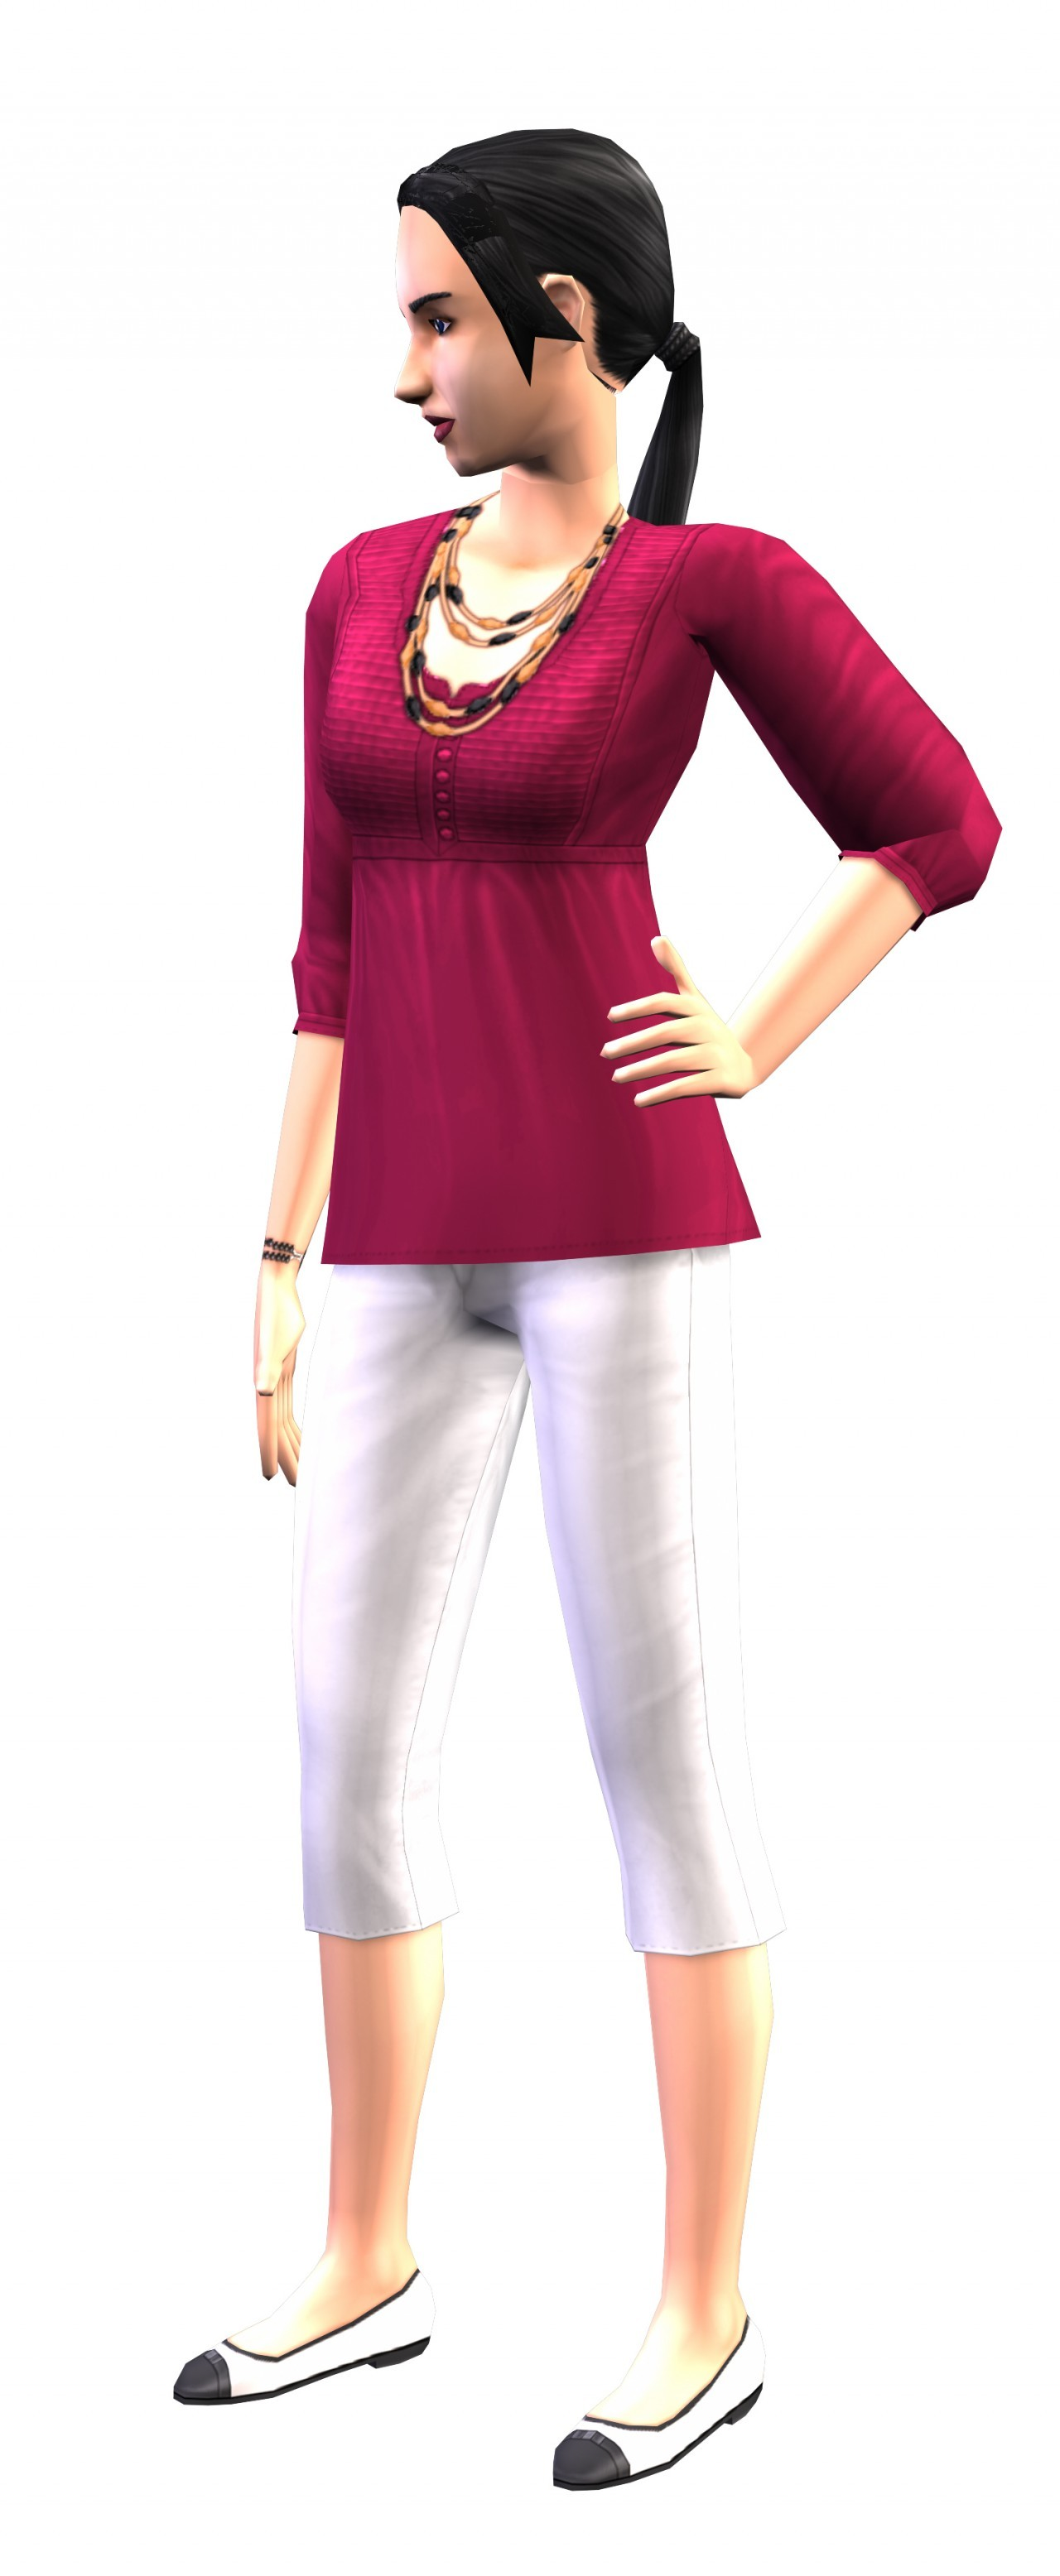 Downloads / Sims 2 / Sets / Fashion Mix - The Sims Resource 23